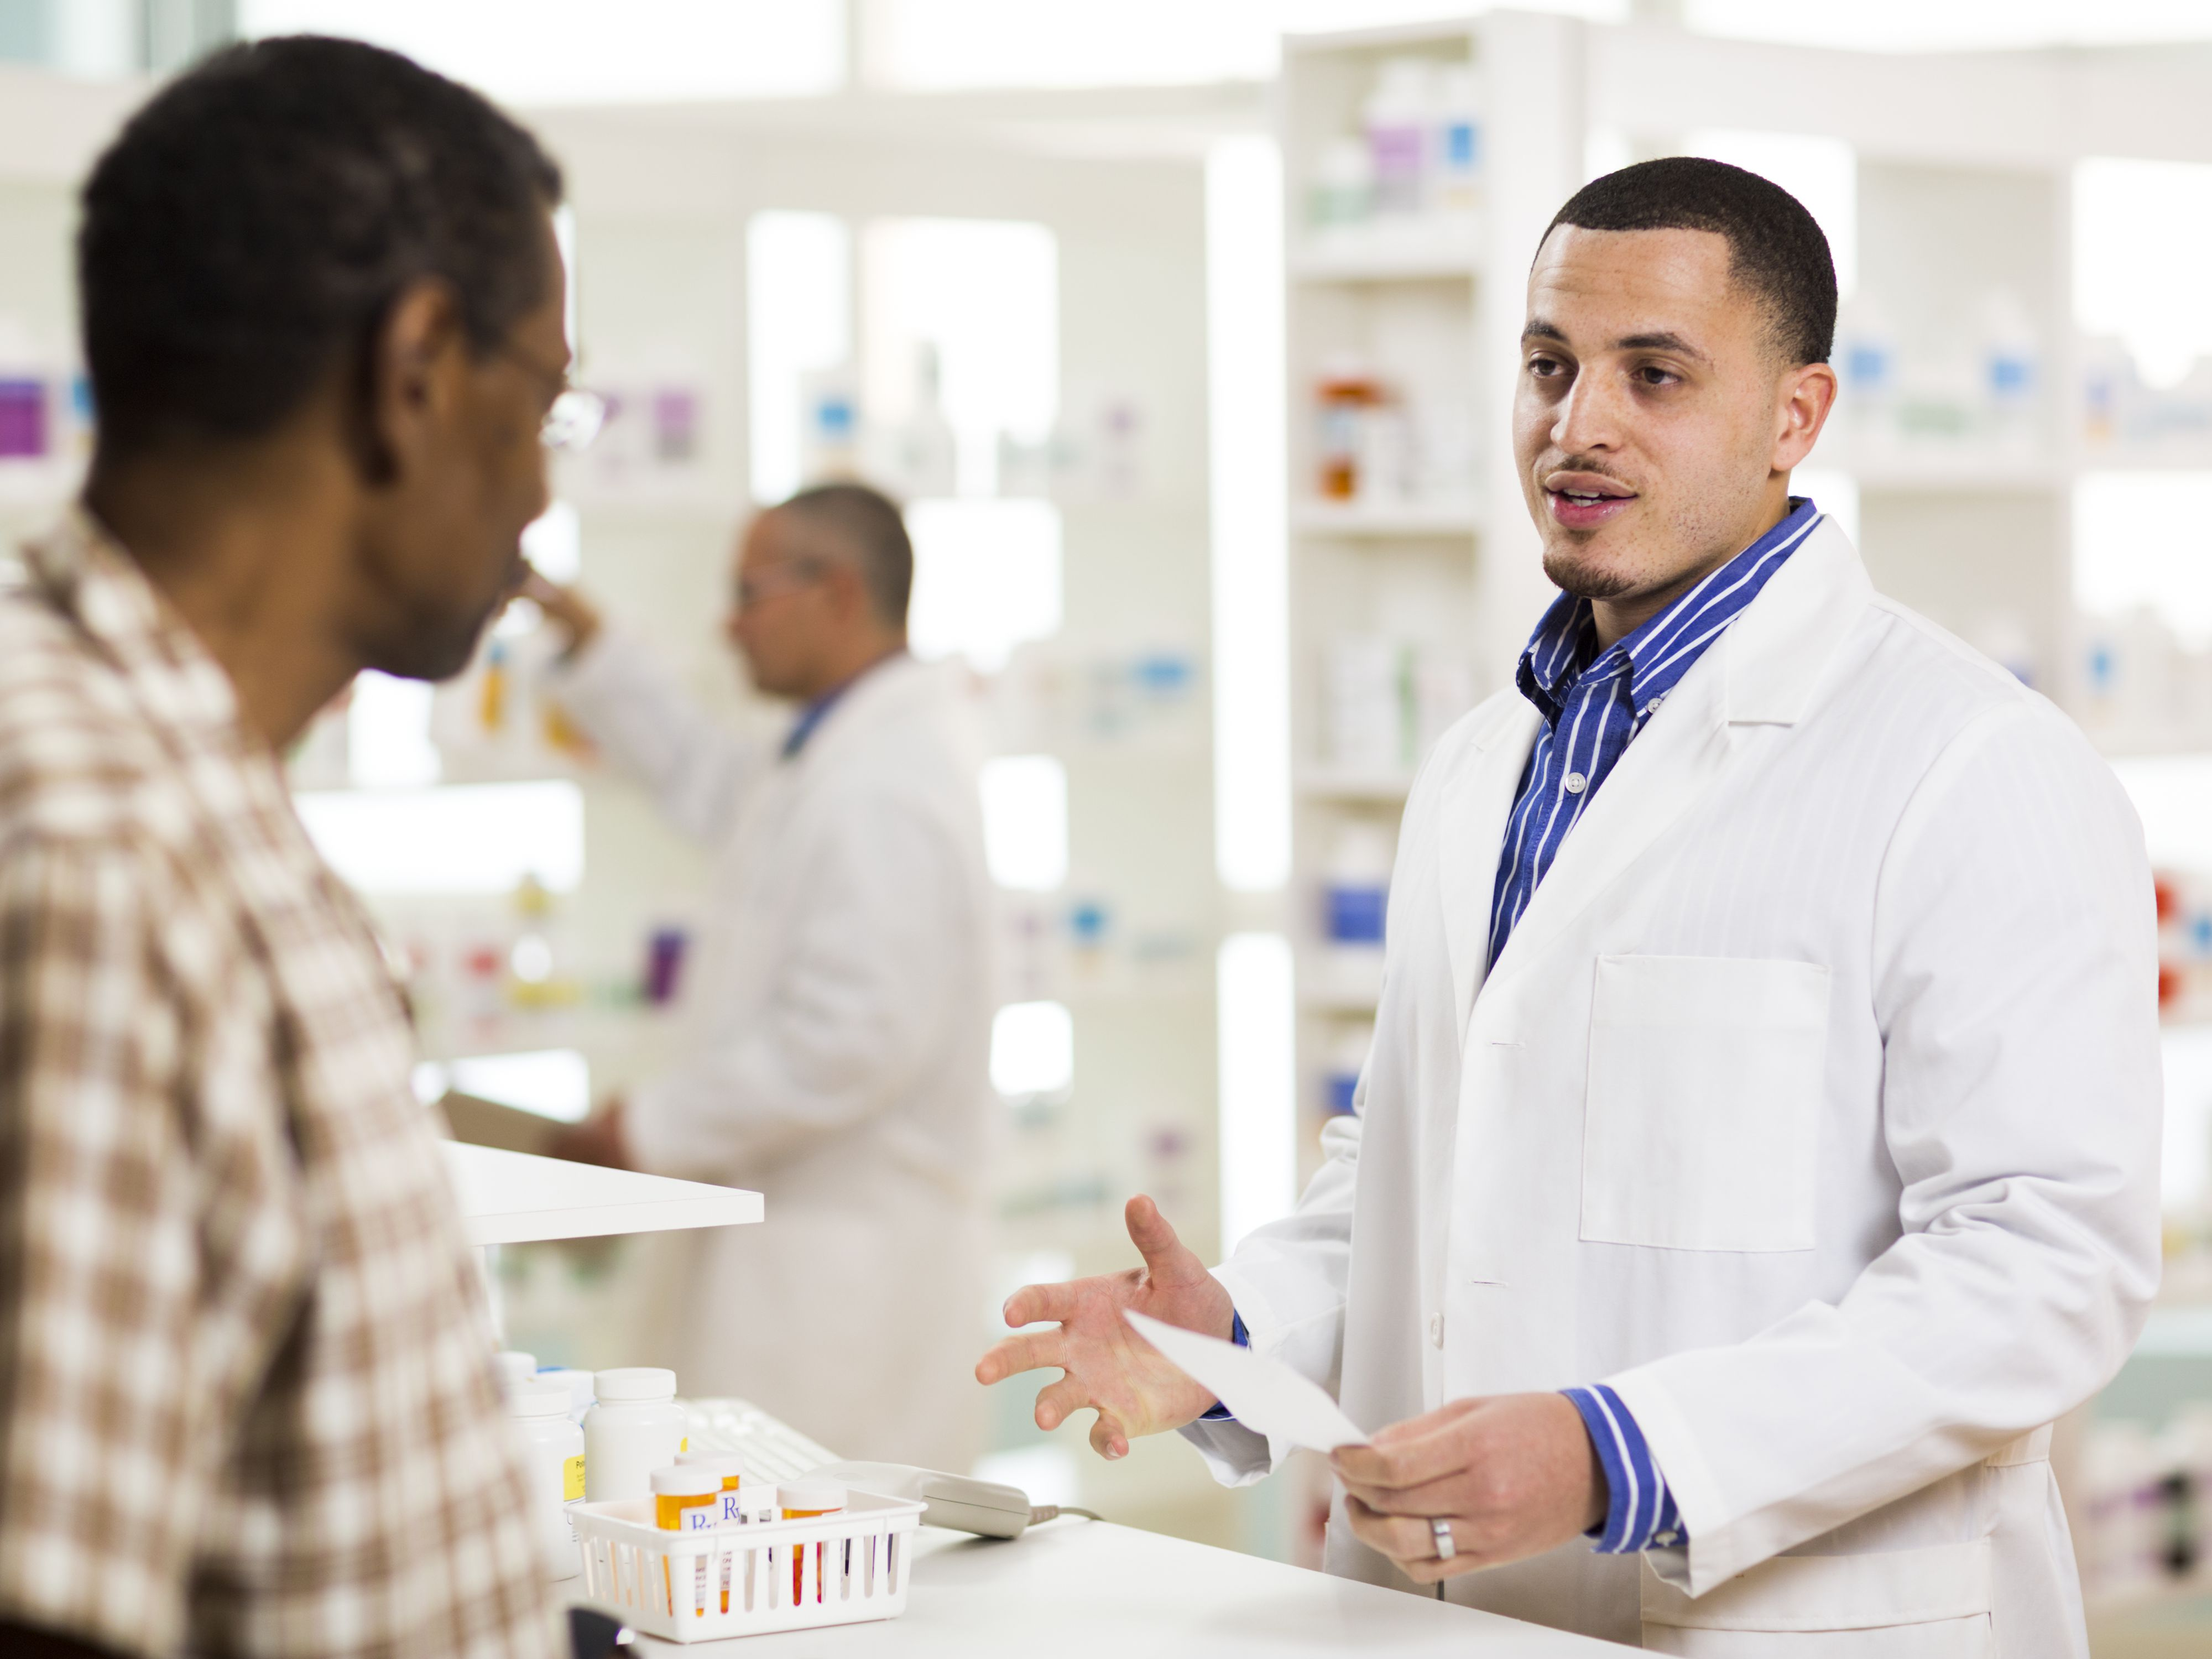 How To Become A Pharmacist Education And Licensing